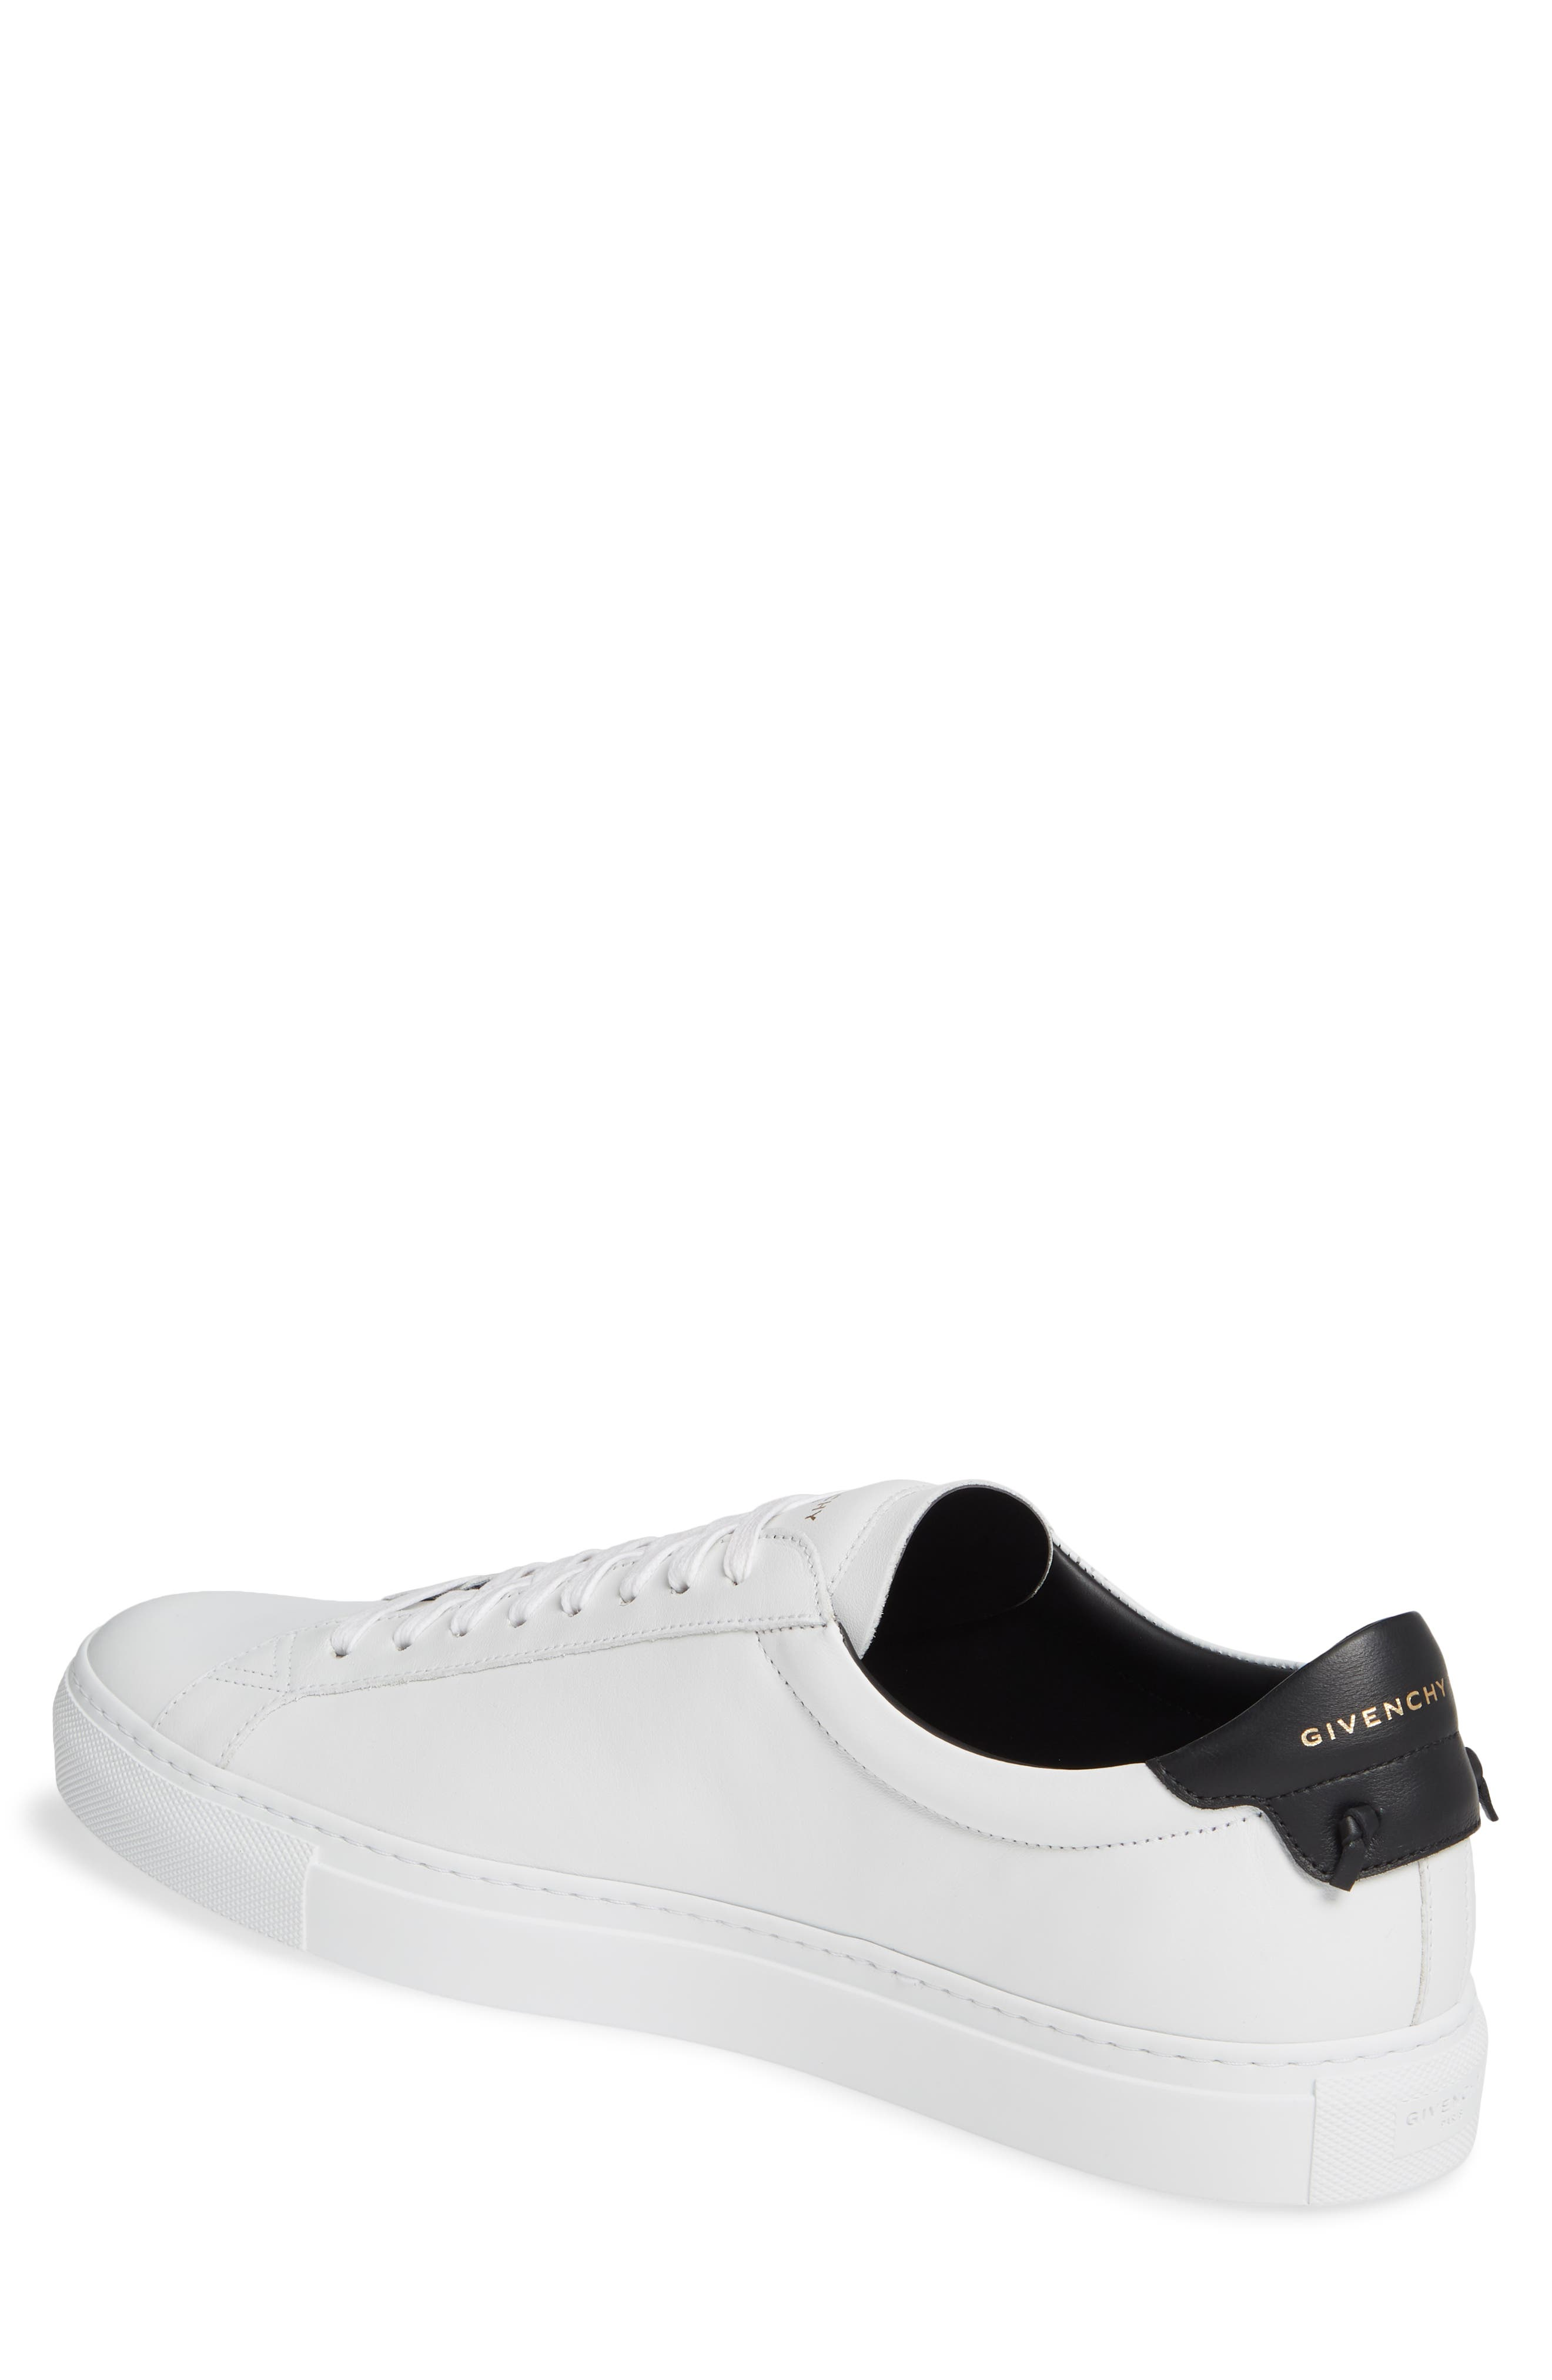 15554354b760a Men's Givenchy Shoes | Nordstrom